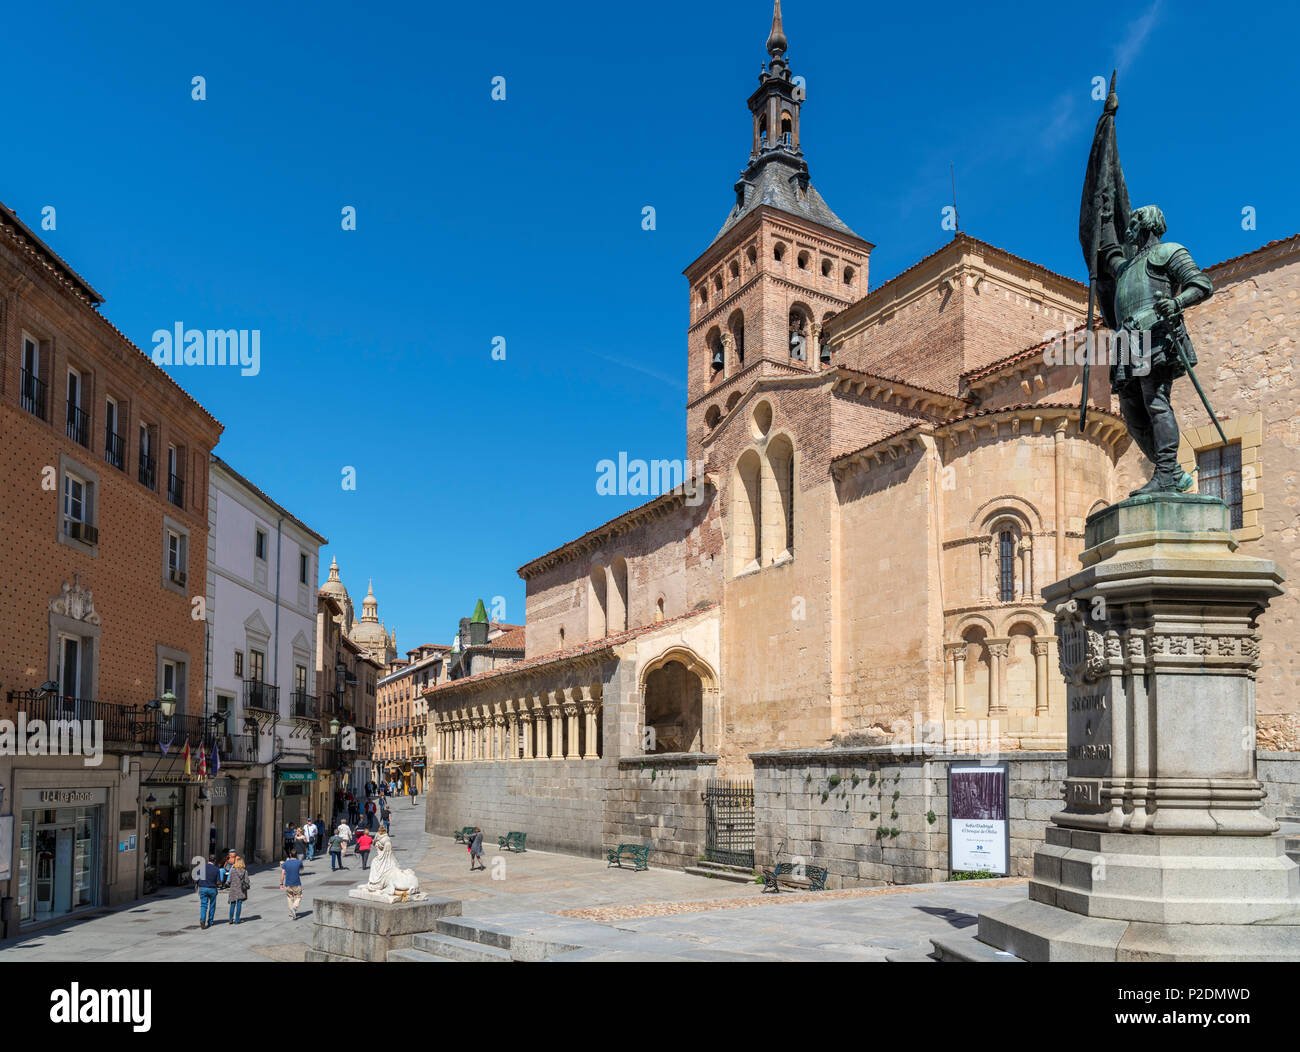 Segovia, Pain. Plaza de San Martin, church of San Martin and statue of Juan Bravo, Segovia, Castilla y Leon, Spain - Stock Image